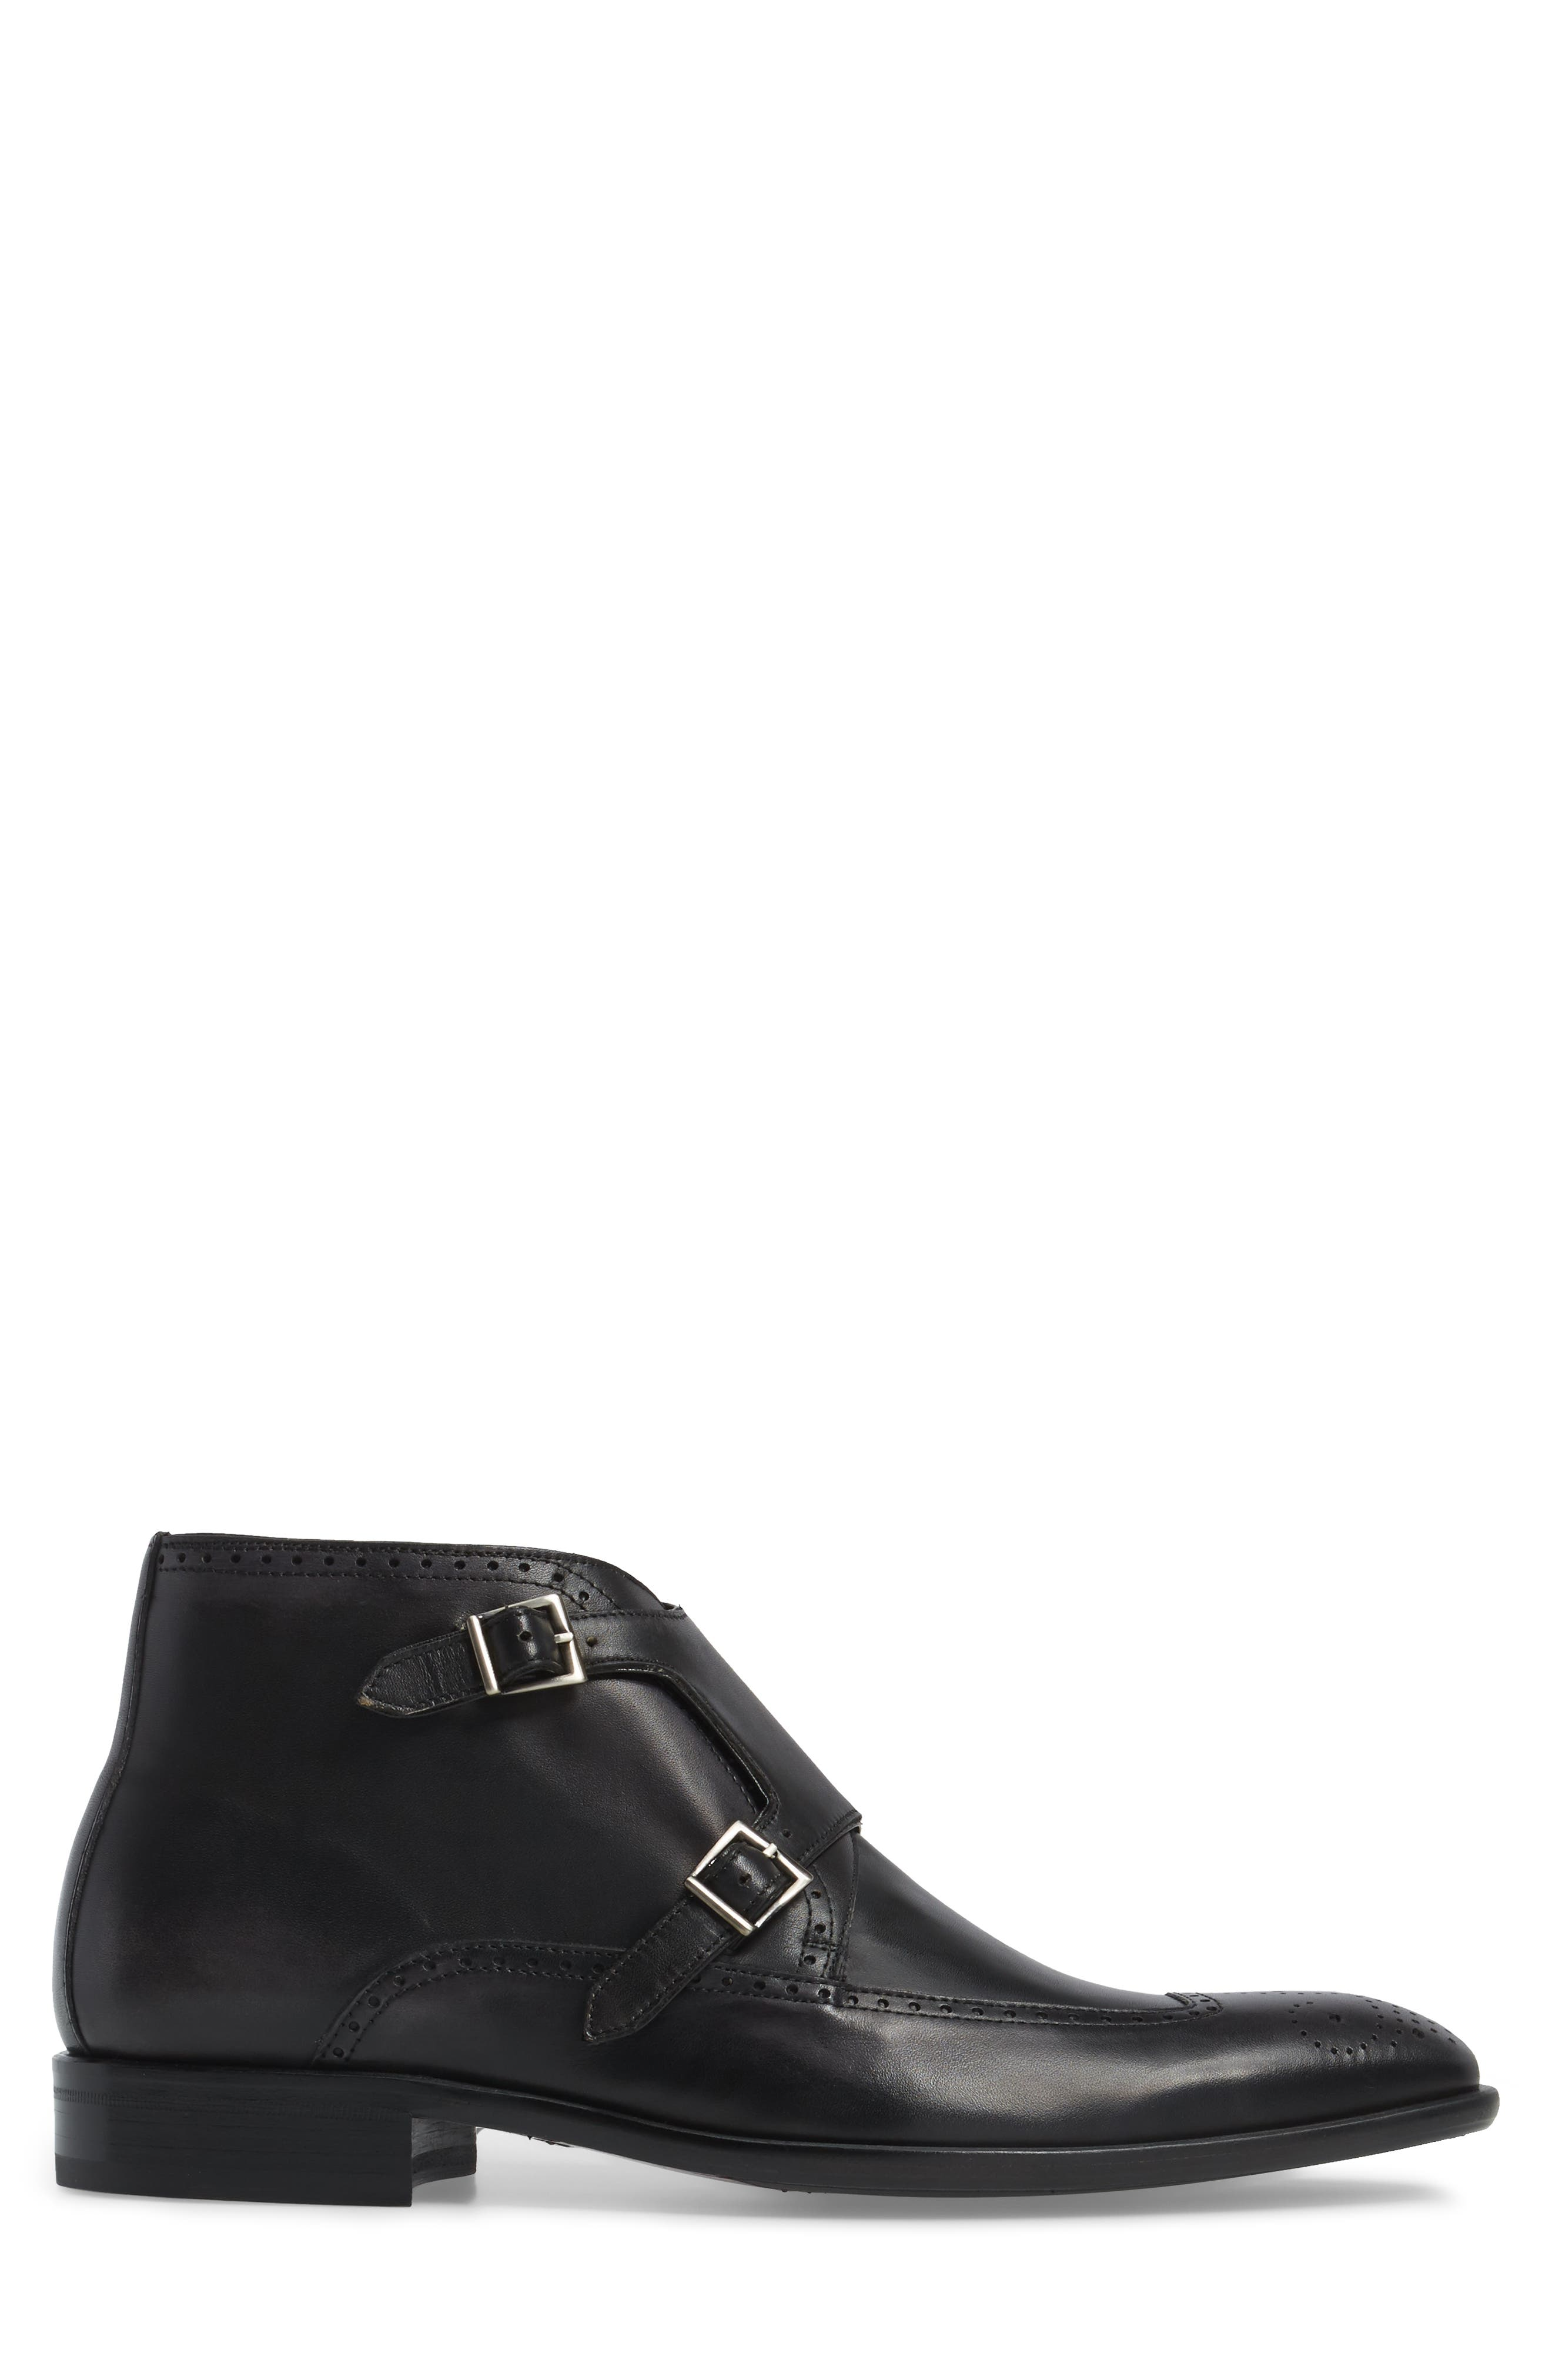 Taberna Double Monk Strap Boot,                             Alternate thumbnail 3, color,                             GRAPHITE LEATHER